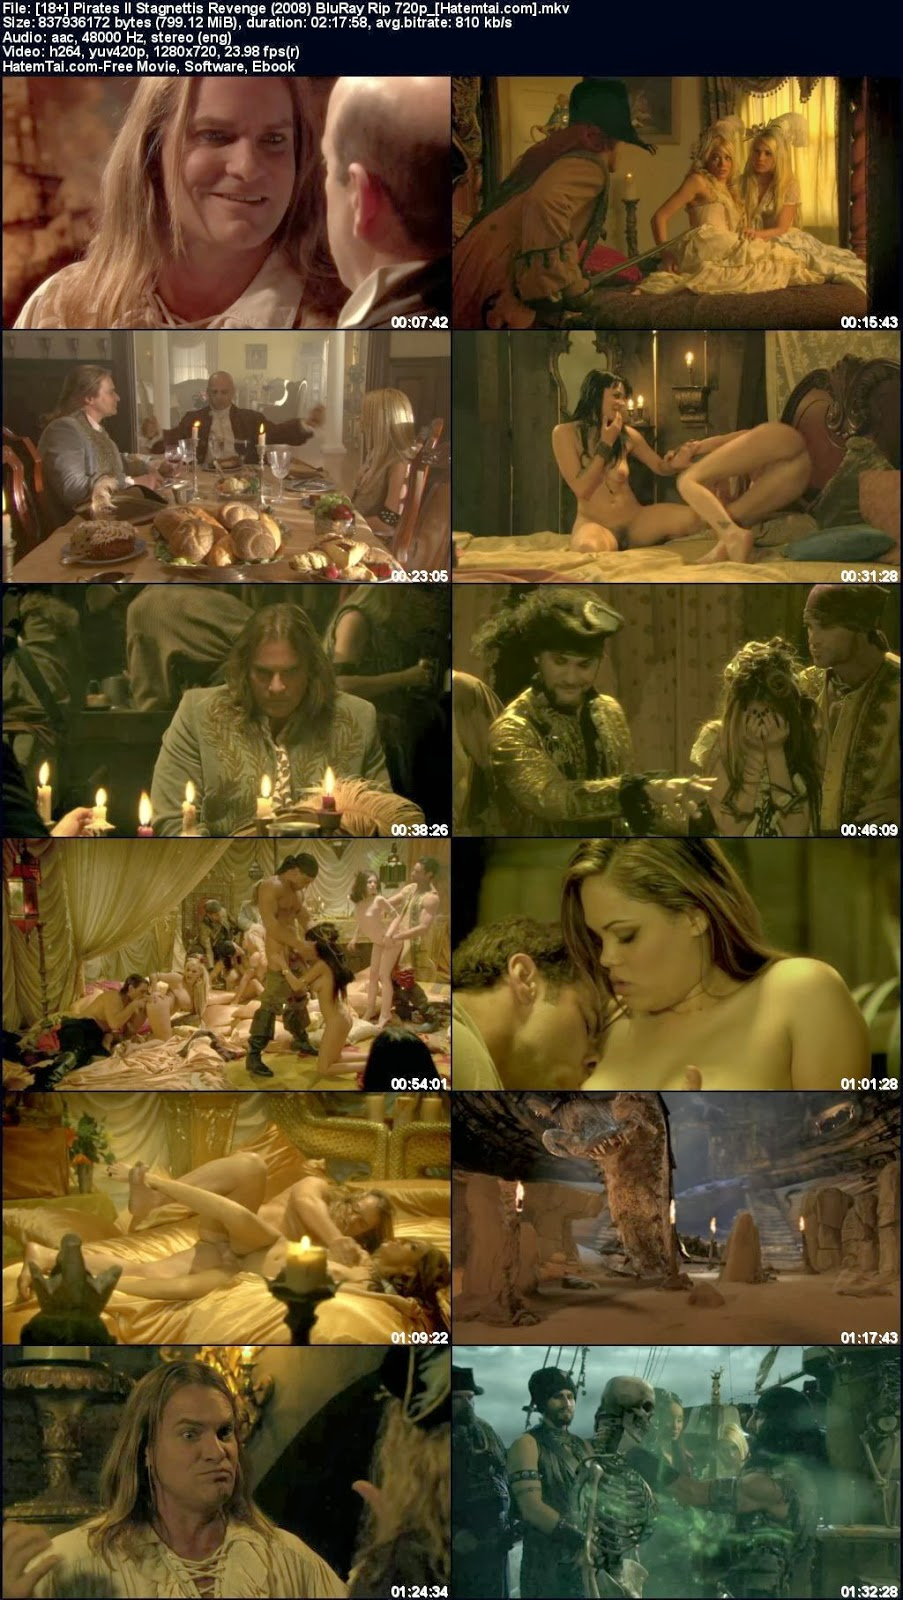 Pirates of sarebian porn vrrsion movie hd nude clip